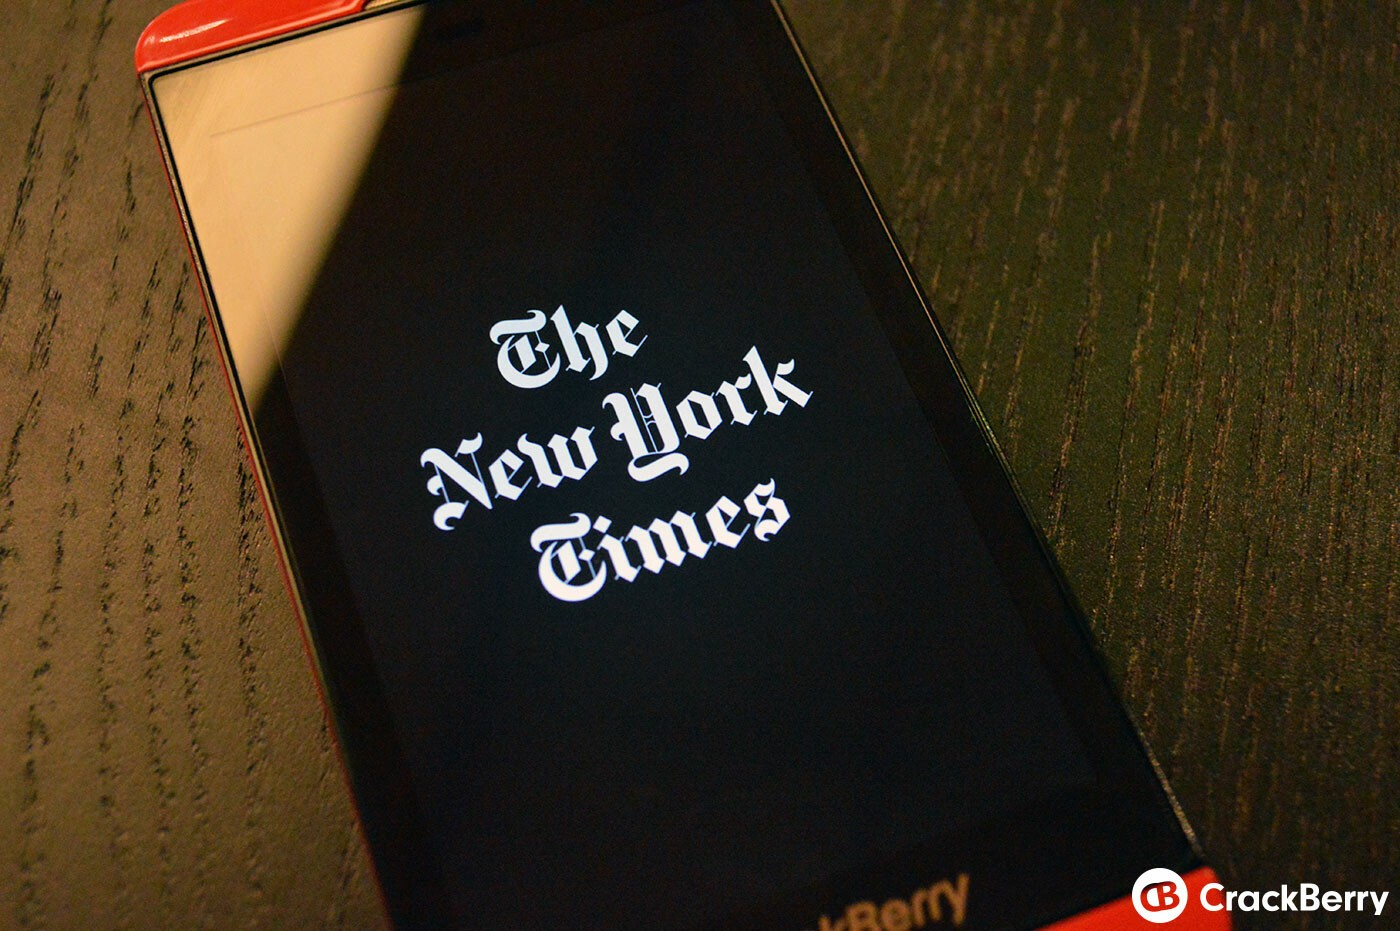 Download the NY Times app and get full access for free